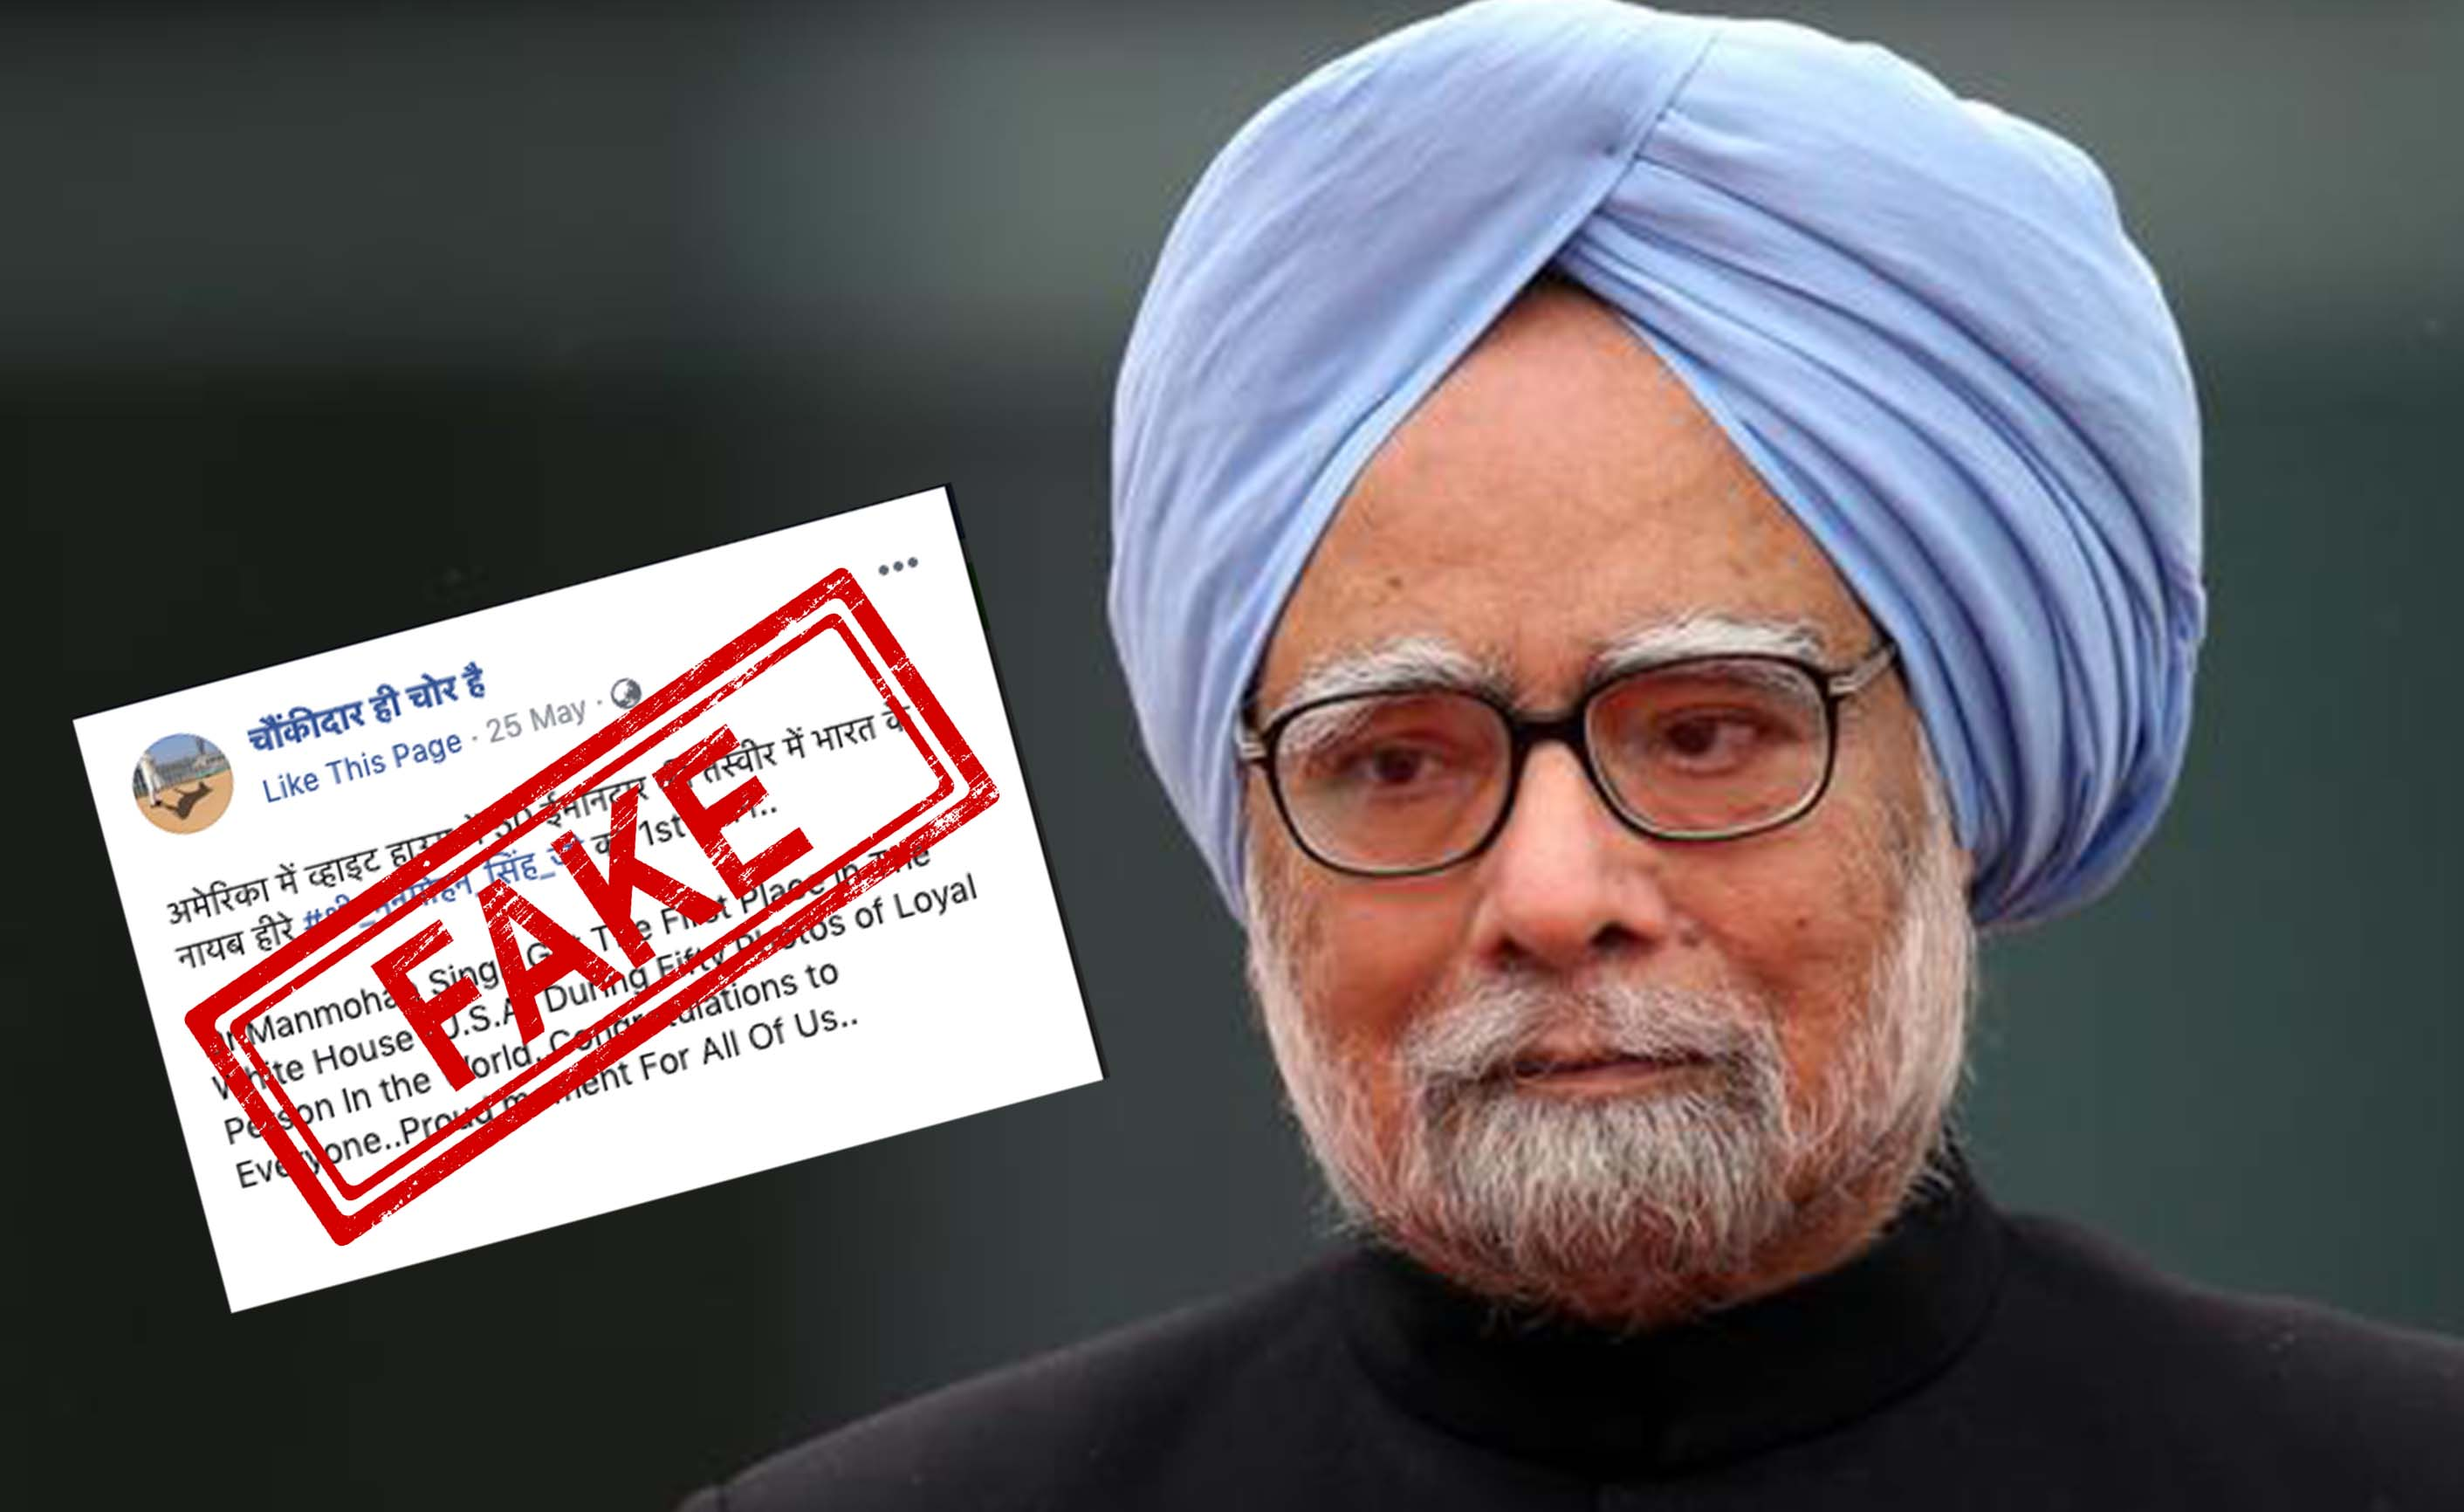 Dr Manmohan Singh, Former, Prime Minister, White House, Loyal Person, 50, NewsMobile, Mobile, News, India, Fact Check, Fact Checker, Fake, News